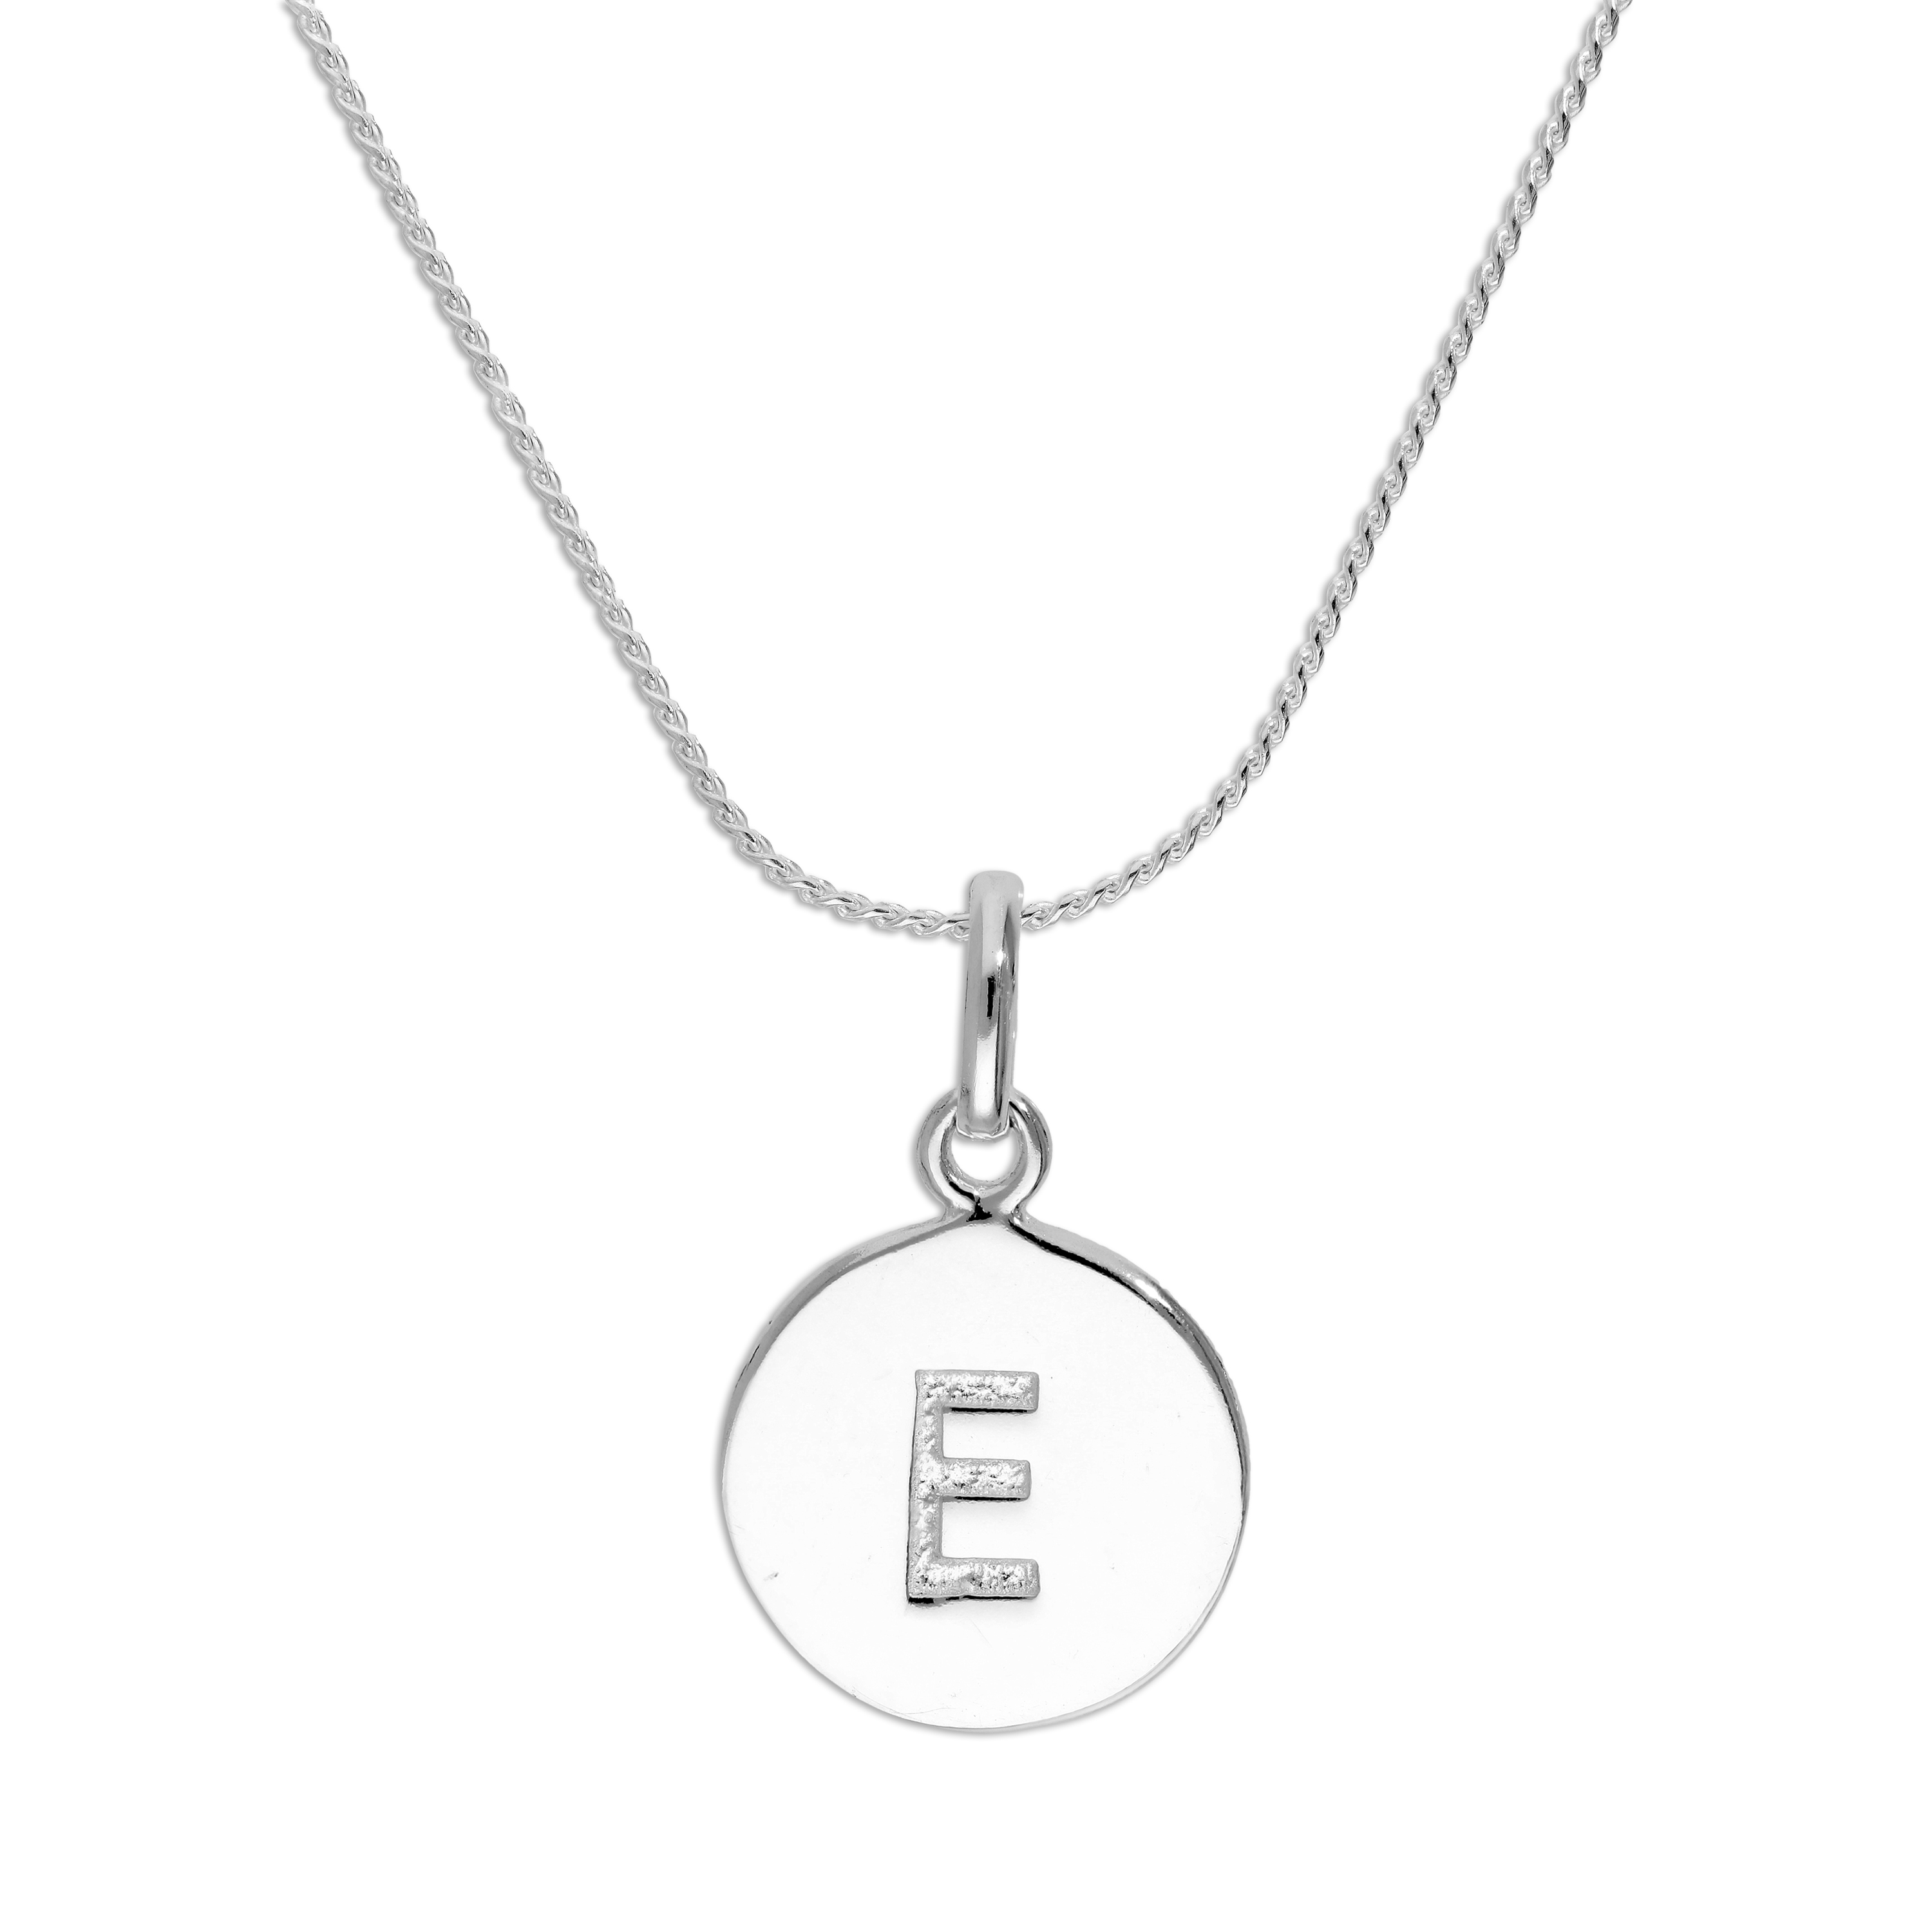 An image of Sterling Silver Initial Letter E Necklace 20 Inches Blue